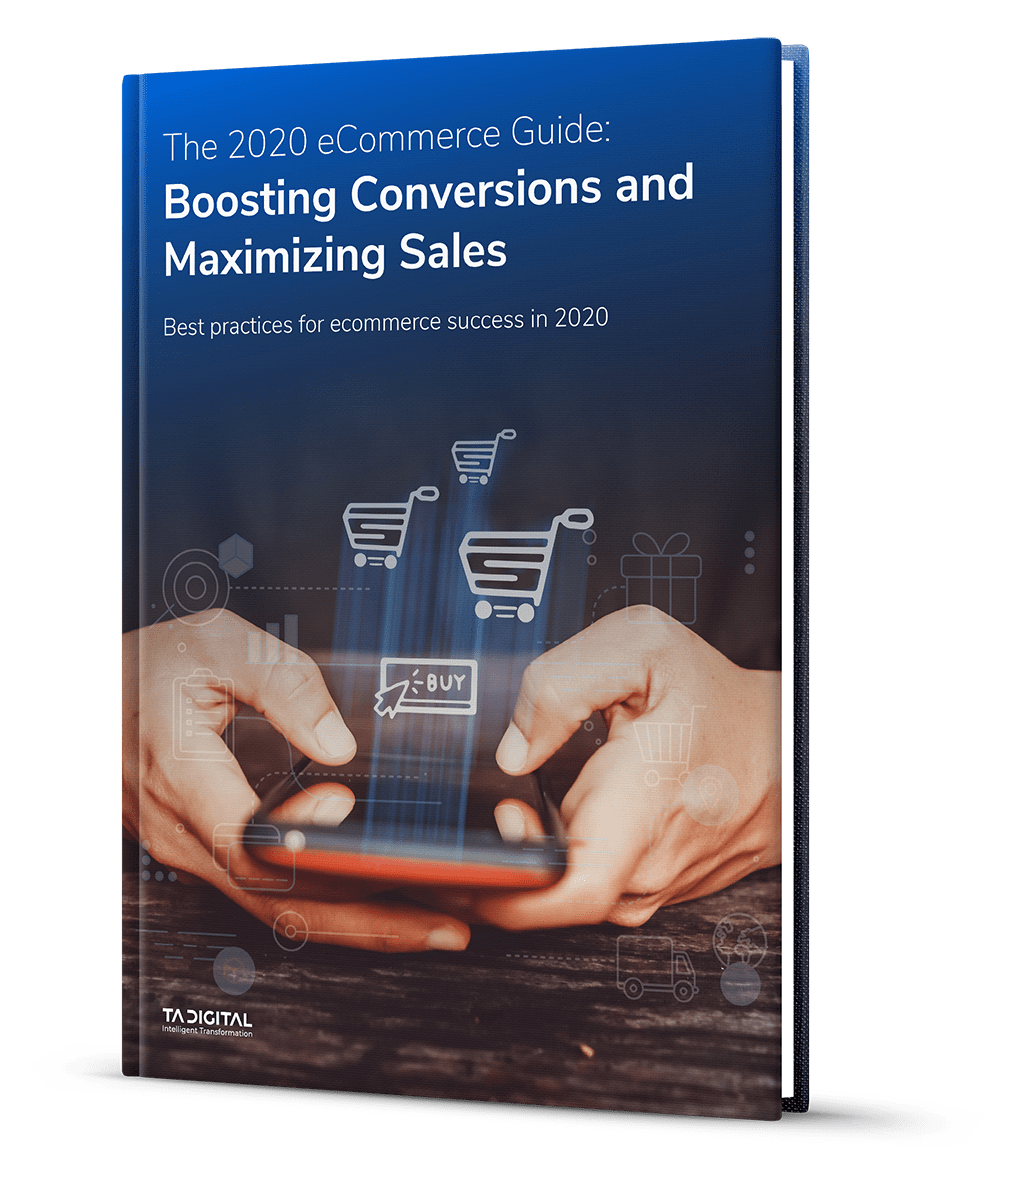 The 2020 eCommerce Guide: Boosting Conversions and Maximizing Sales